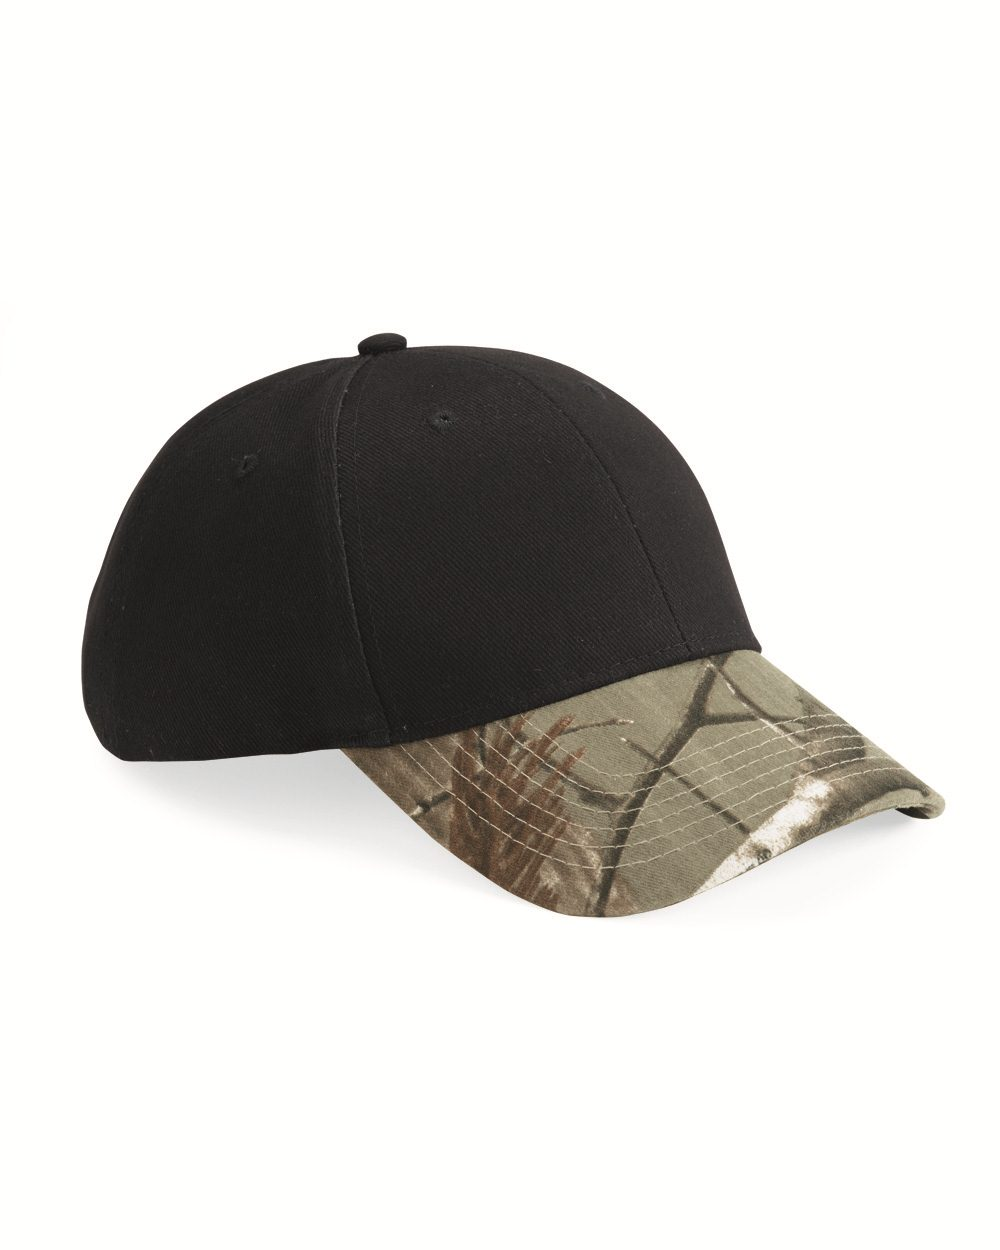 KATI MO25 Solid Crown Camoflage Cap